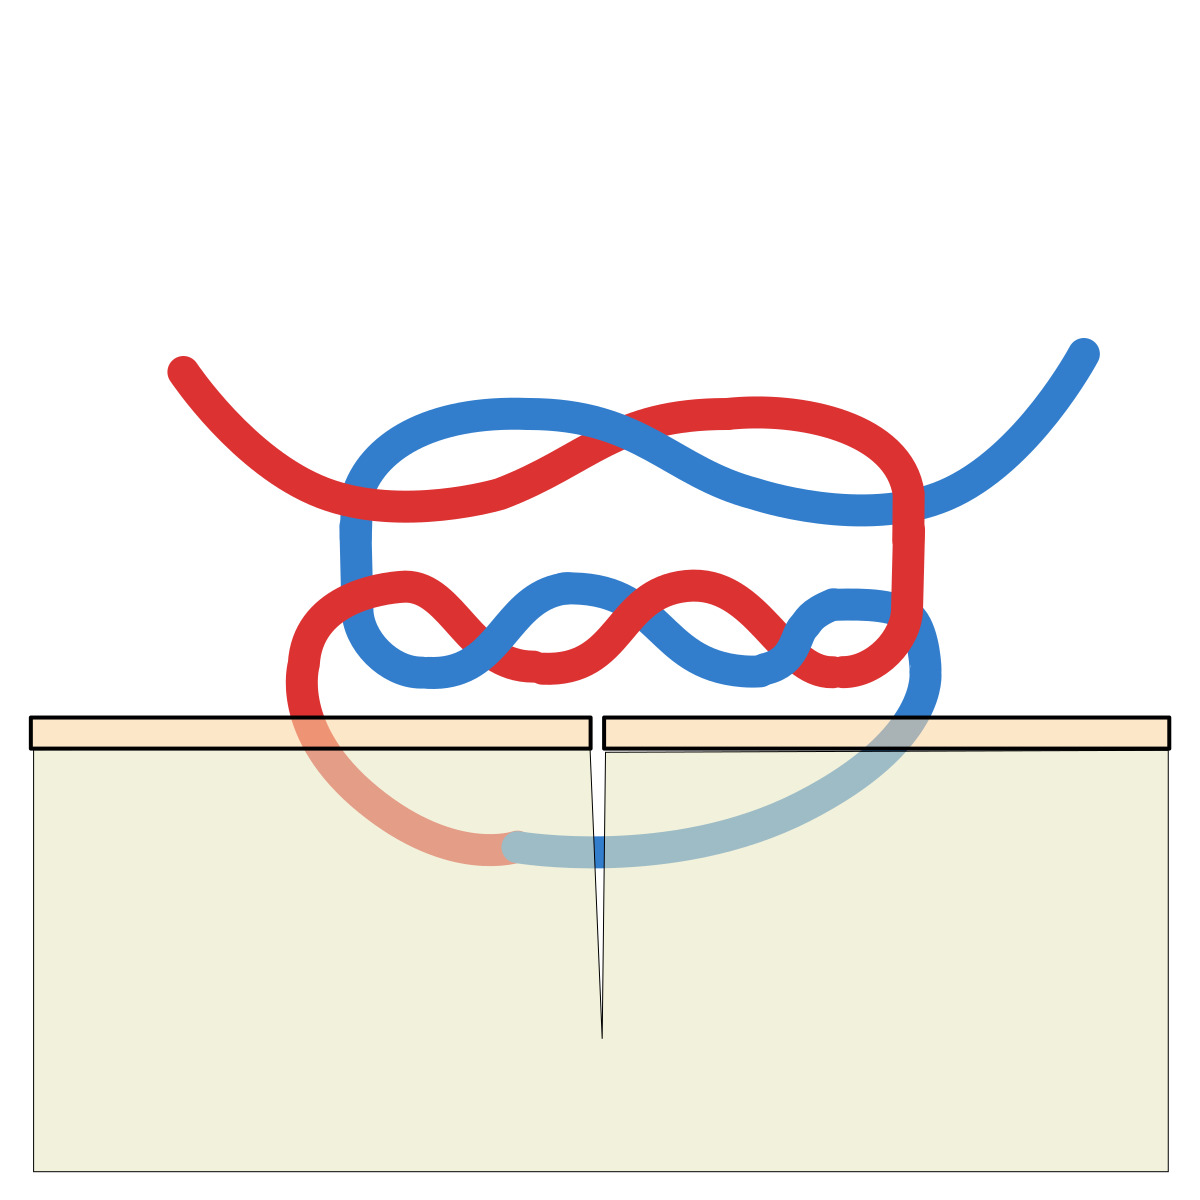 Diagram of a surgeon's knot